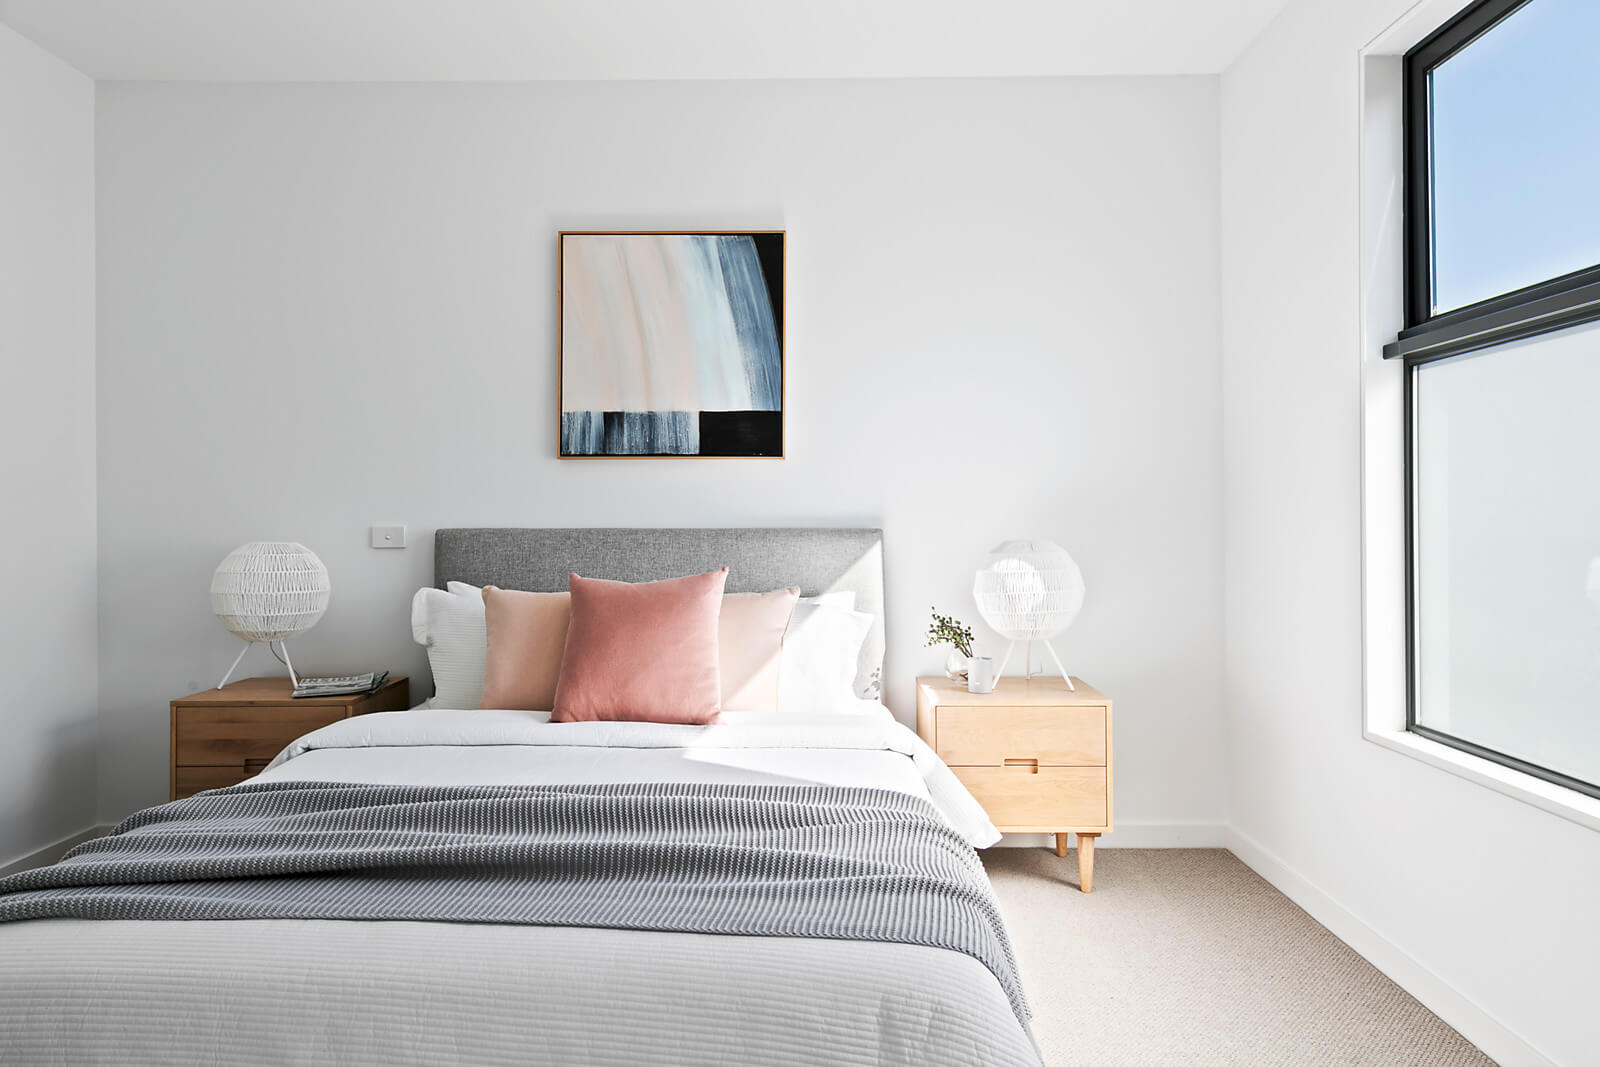 Bed with pink cushions, grey throw, white linen. Timber bedside tables with woven white table lamps. Grey bedhead with centred artwork above with hues of pink, blue and navy.